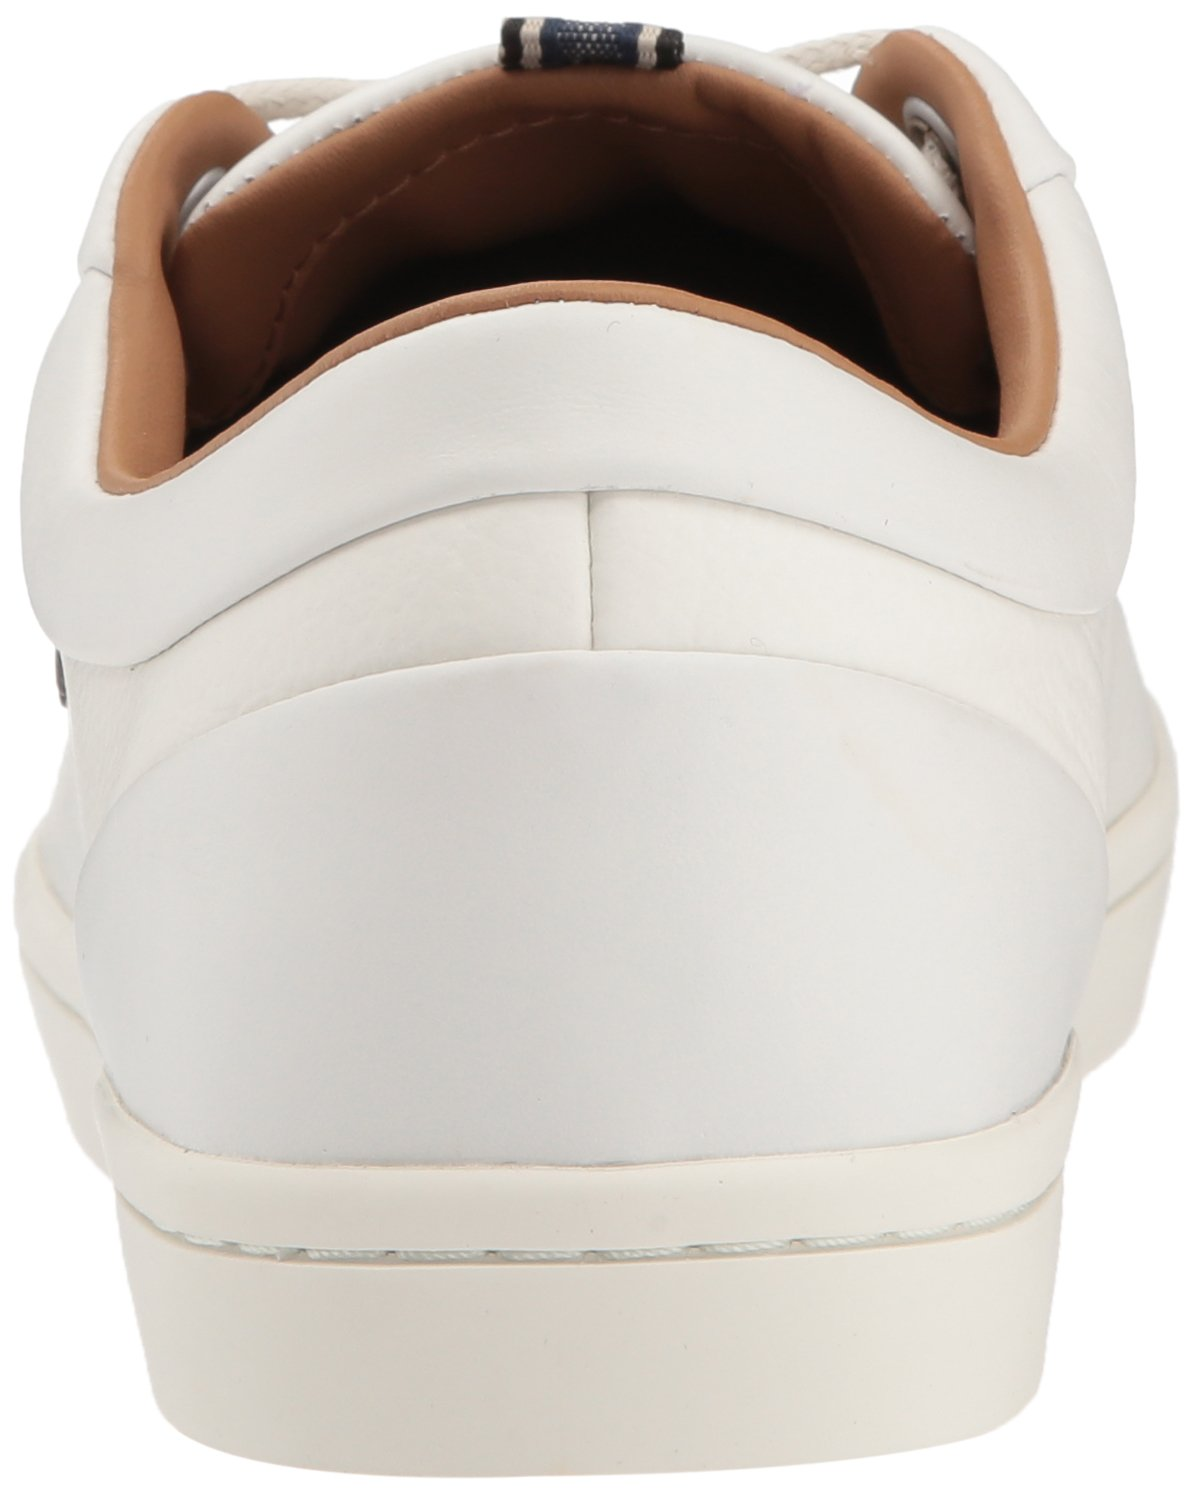 Lacoste Men's Straightset Sneakers by Lacoste (Image #2)